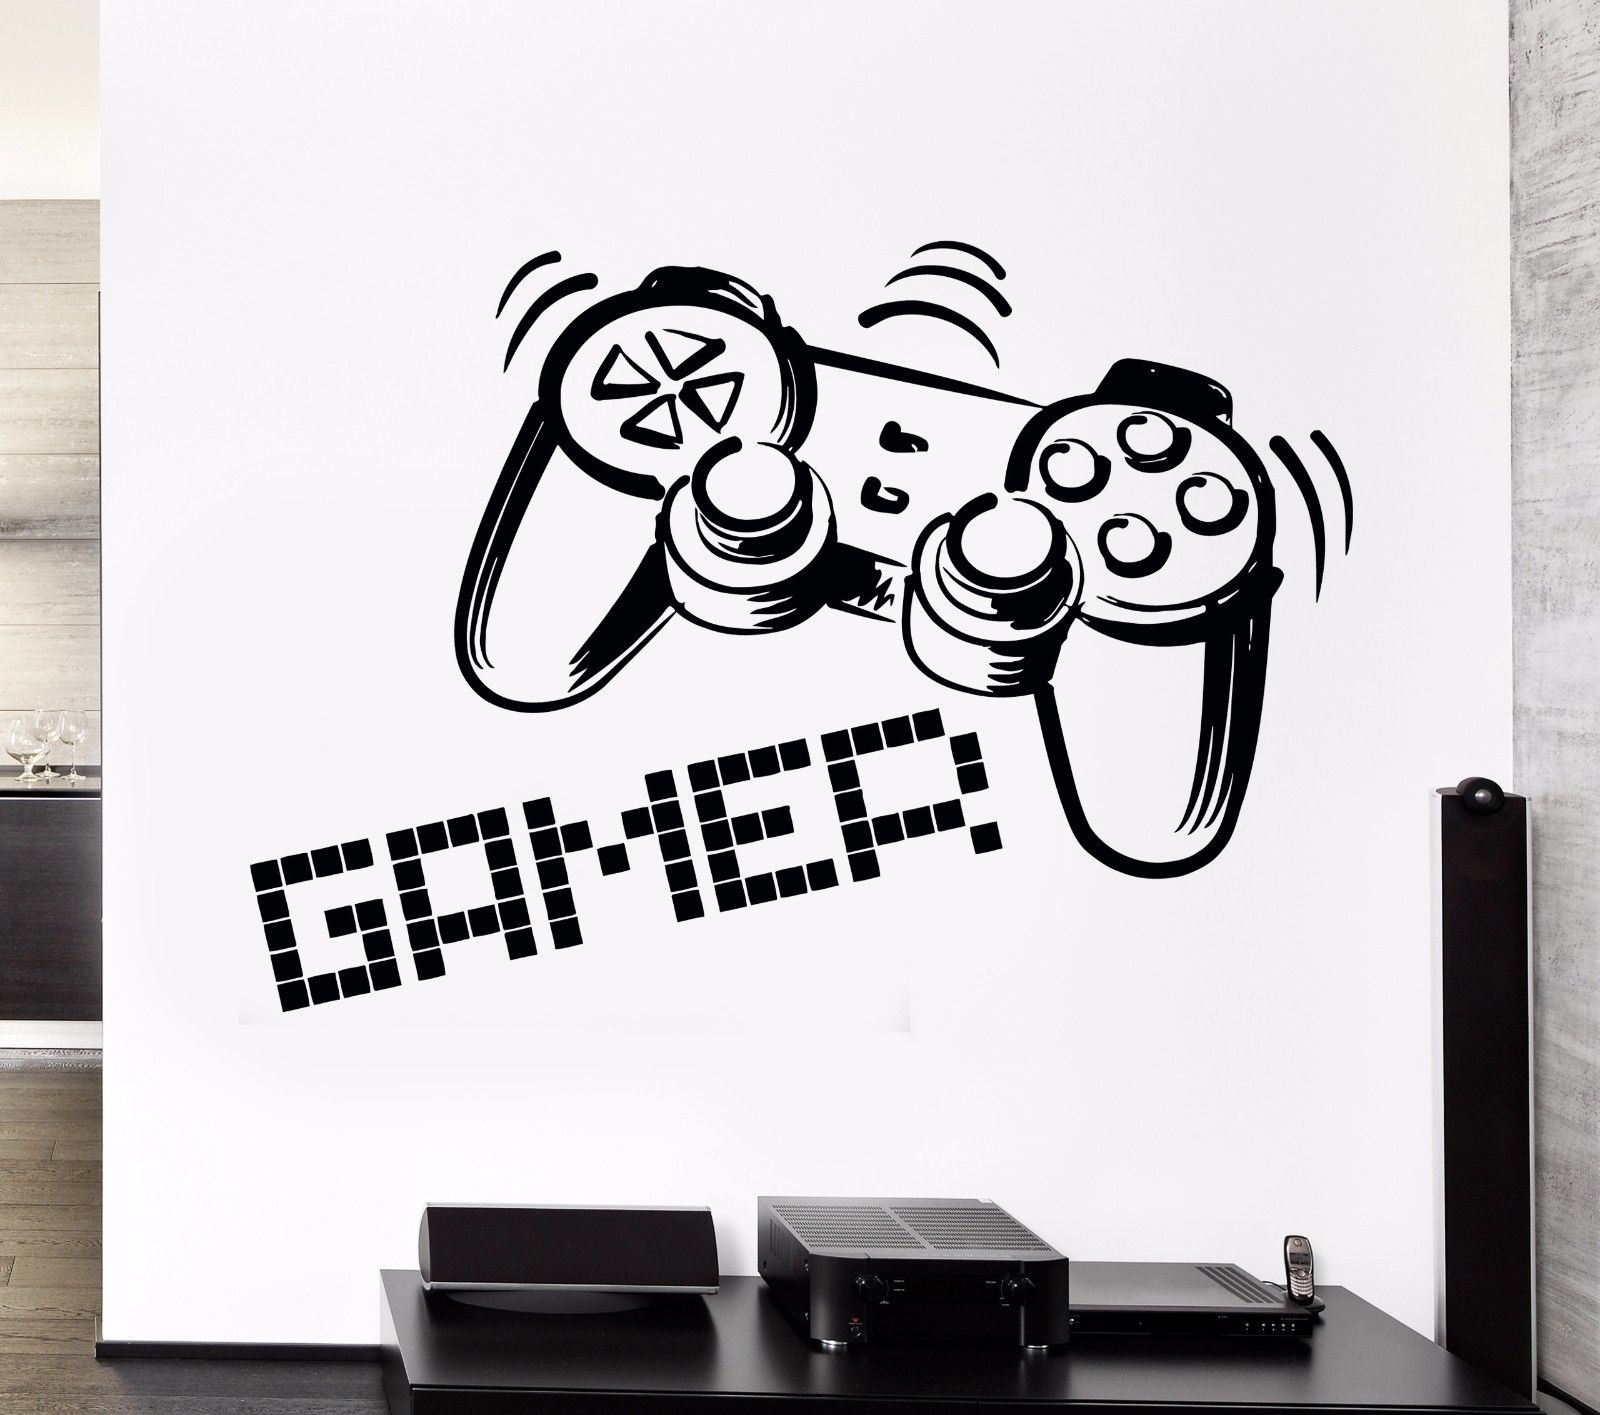 Playing Room Wall Stickers Vinyl Decal Gamer Video Games